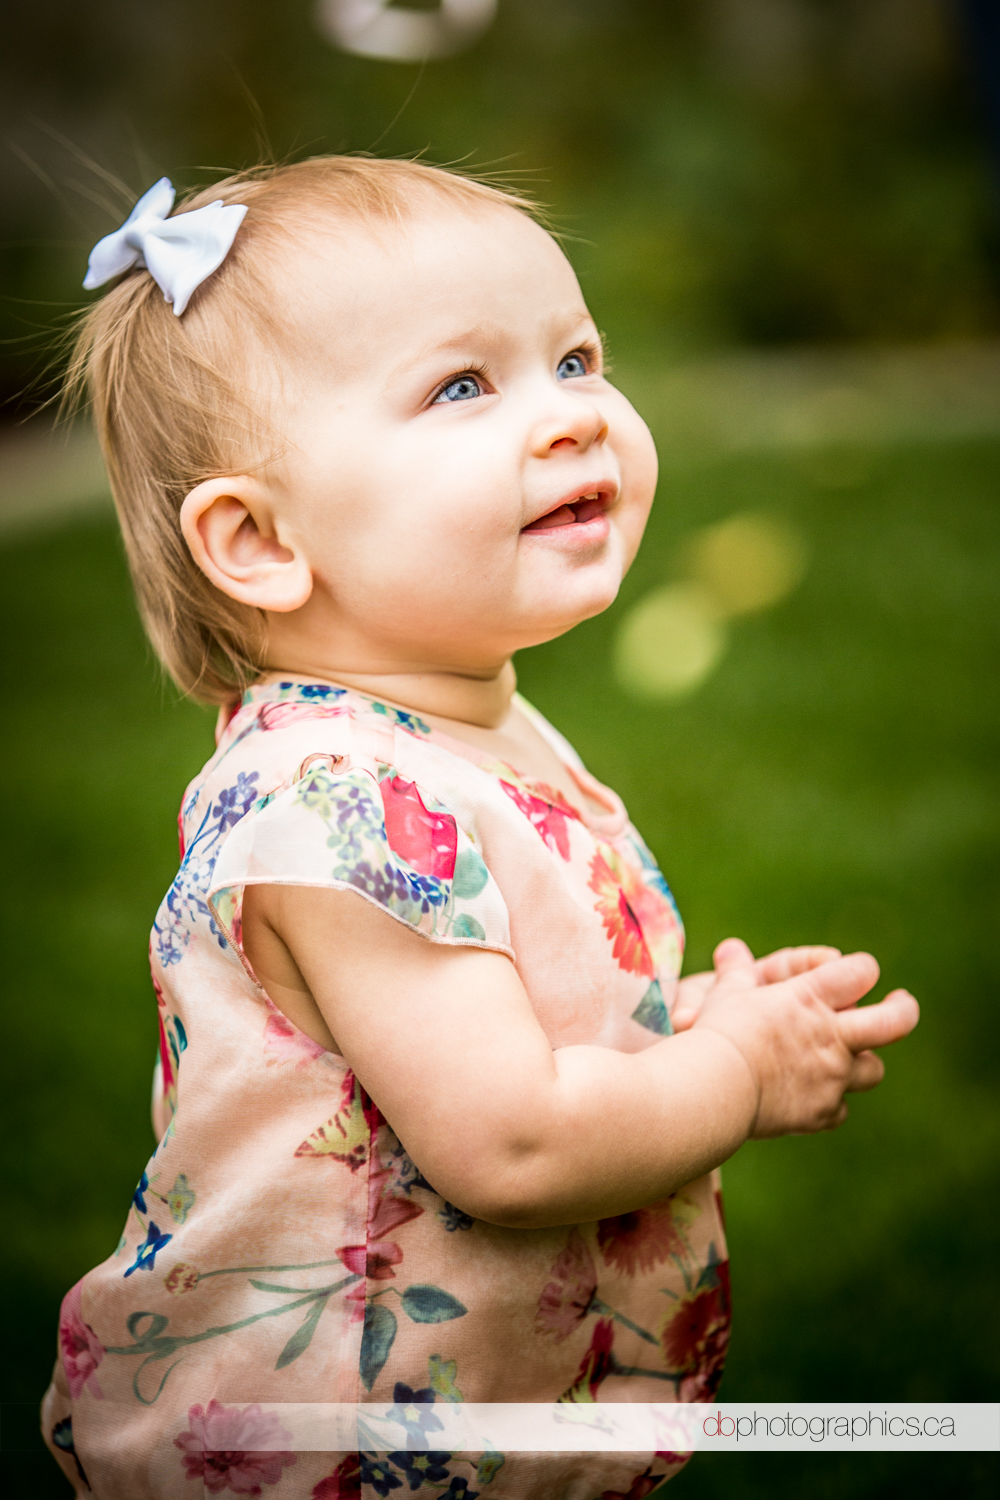 Violet Pipella's 1st Birthday - 20140901 - 0012.jpg